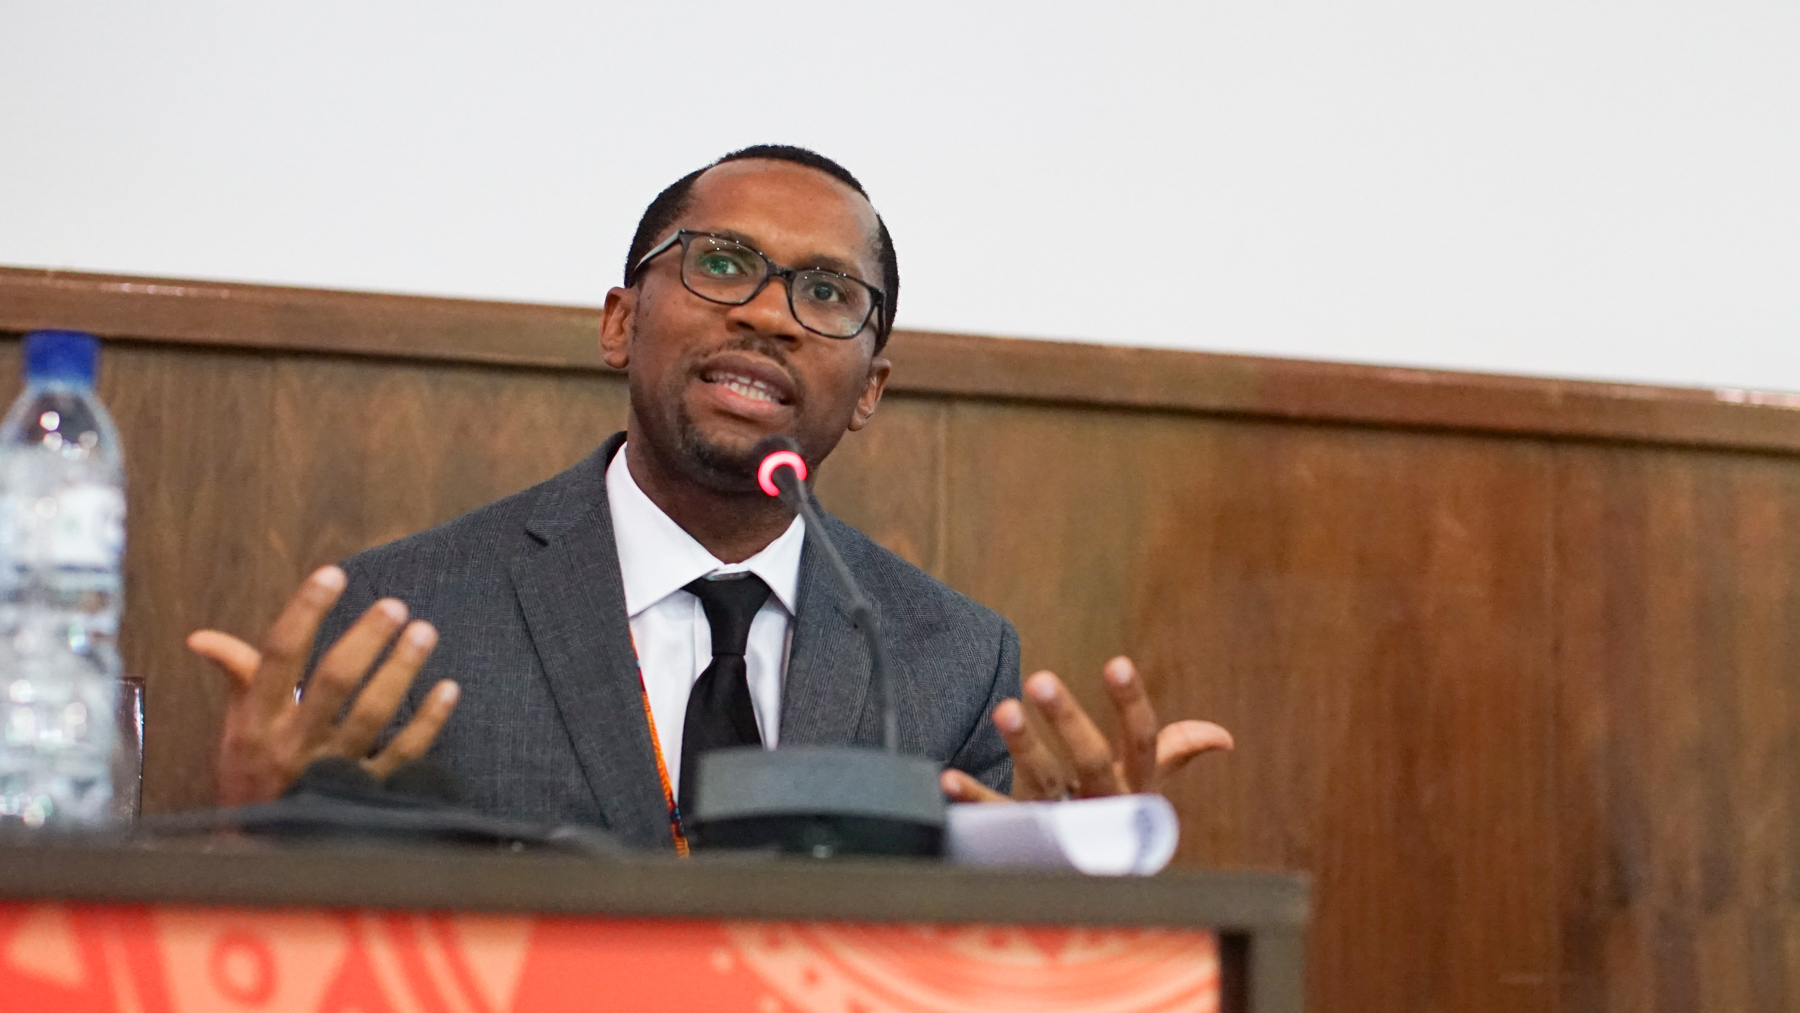 """Dr. Nmazuo """"Maz"""" Ozuah speaks on a panel at the AORTIC Conference in Maputo."""